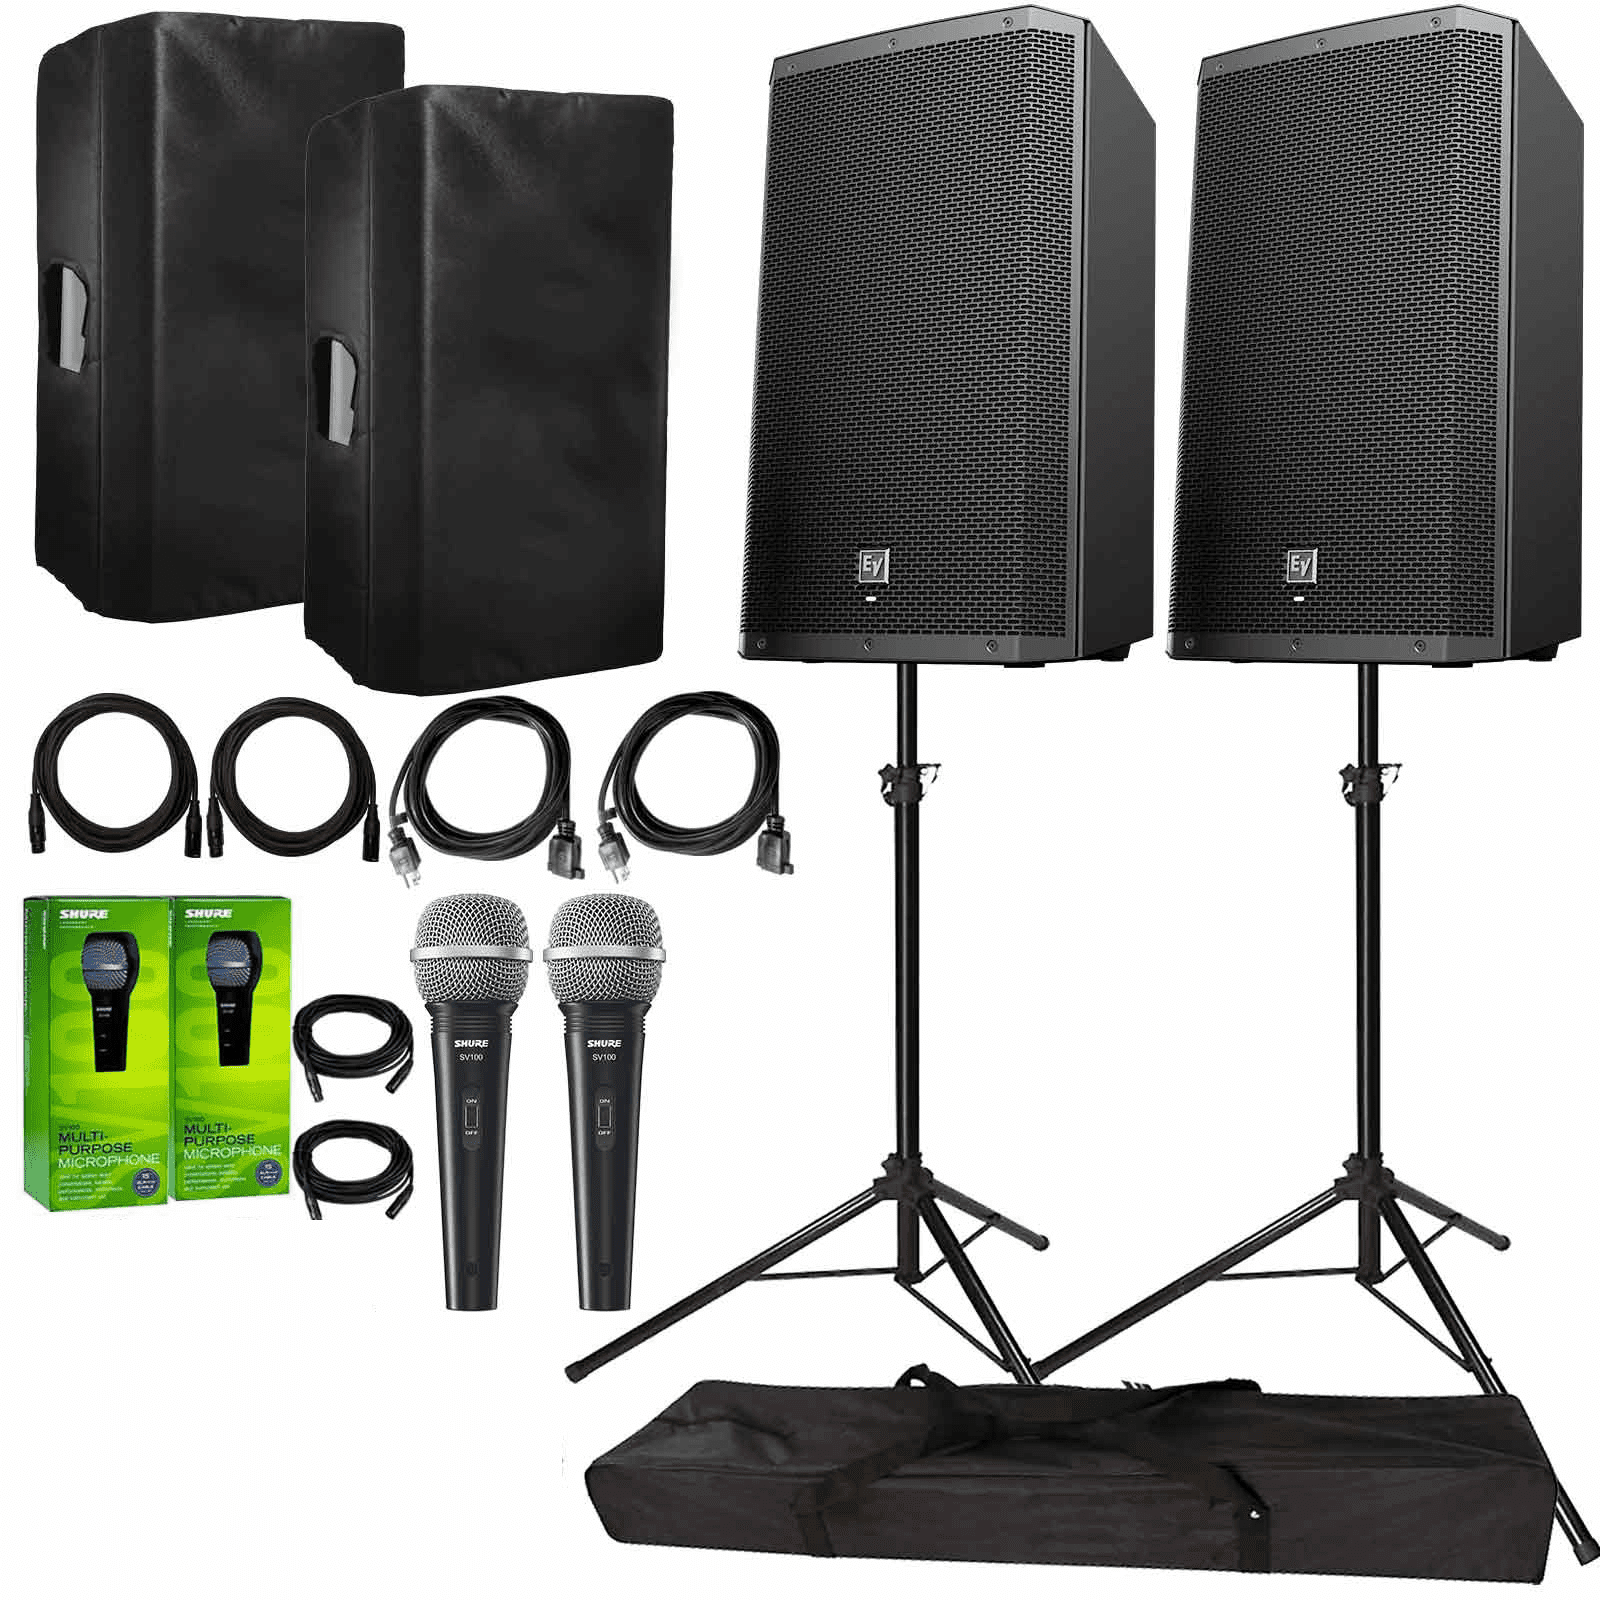 electro-voice-zlx-15bt-active-15-bluetooth-speaker-package-with-2x-shure-sv100w-microphones-cables-covers-stands-75d